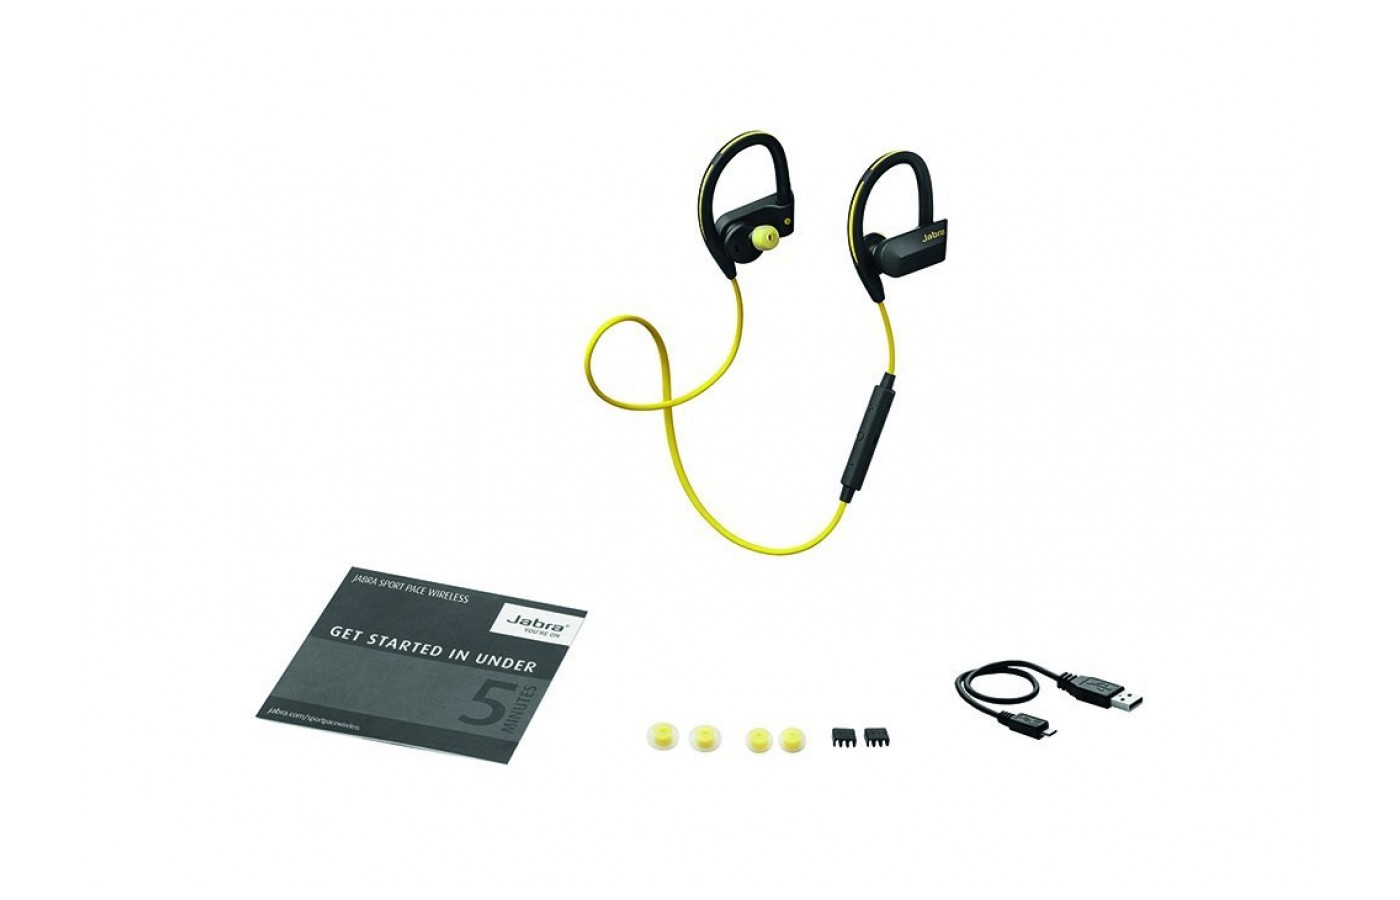 Beneath the headphone is the manual. An inner box holds a micro-USB charging cable and two extra pairs of ear gels.